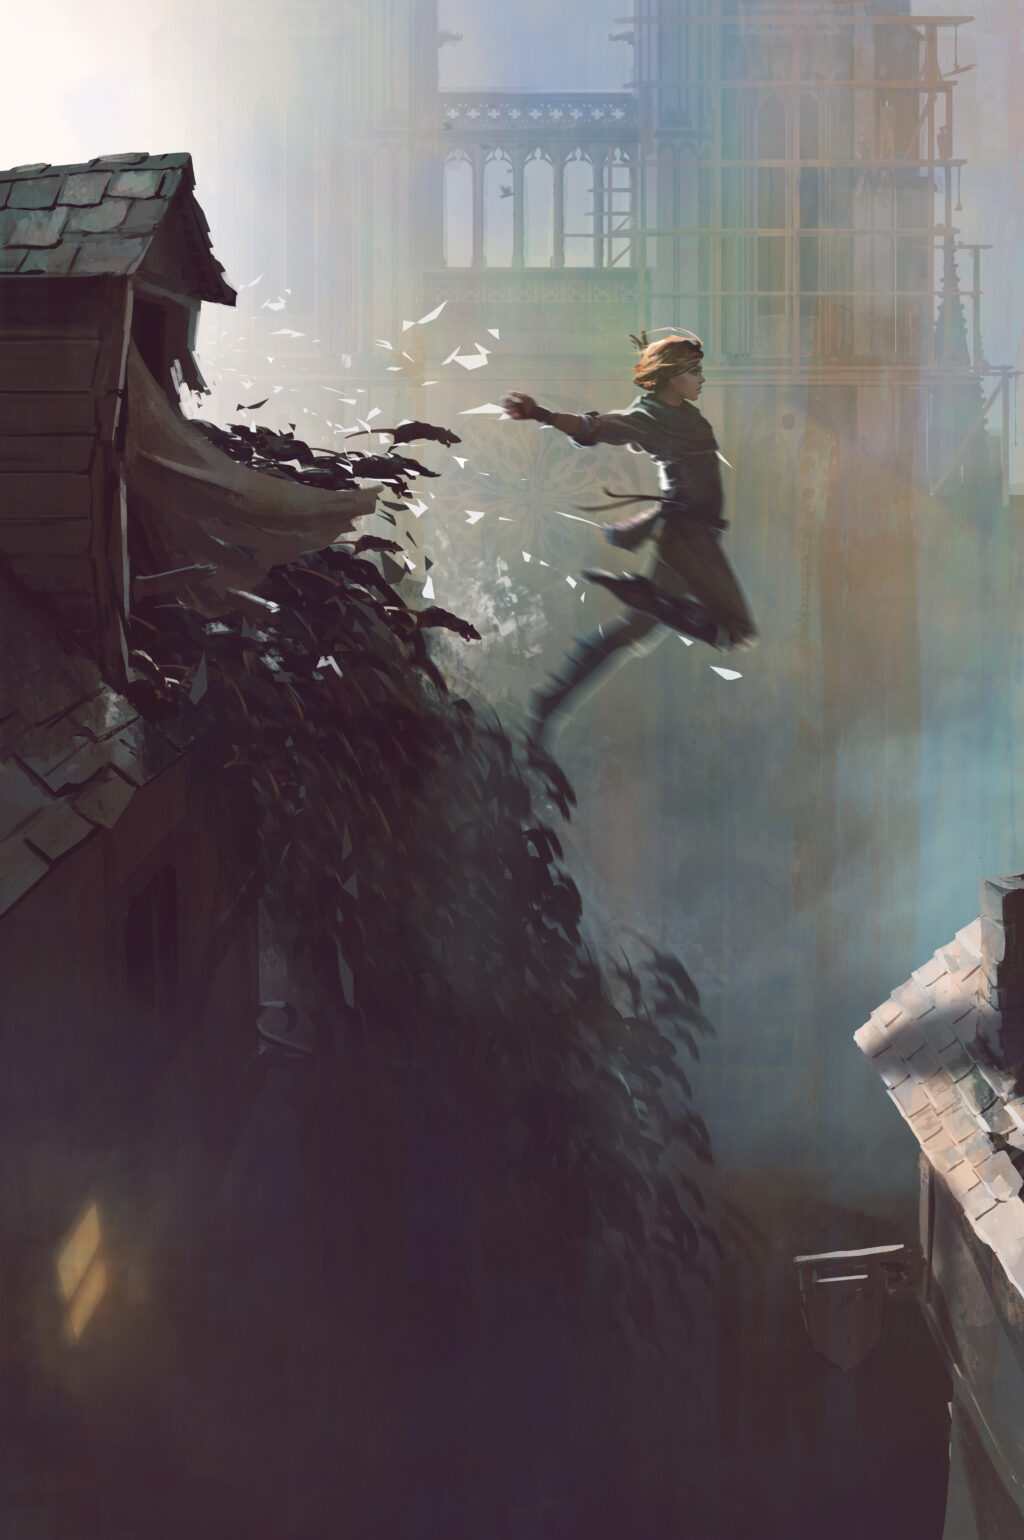 APlagueTale02 1024x1540 - E3 2018: Getting Down With The Sickness In A PLAGUE TALE: INNOCENCE